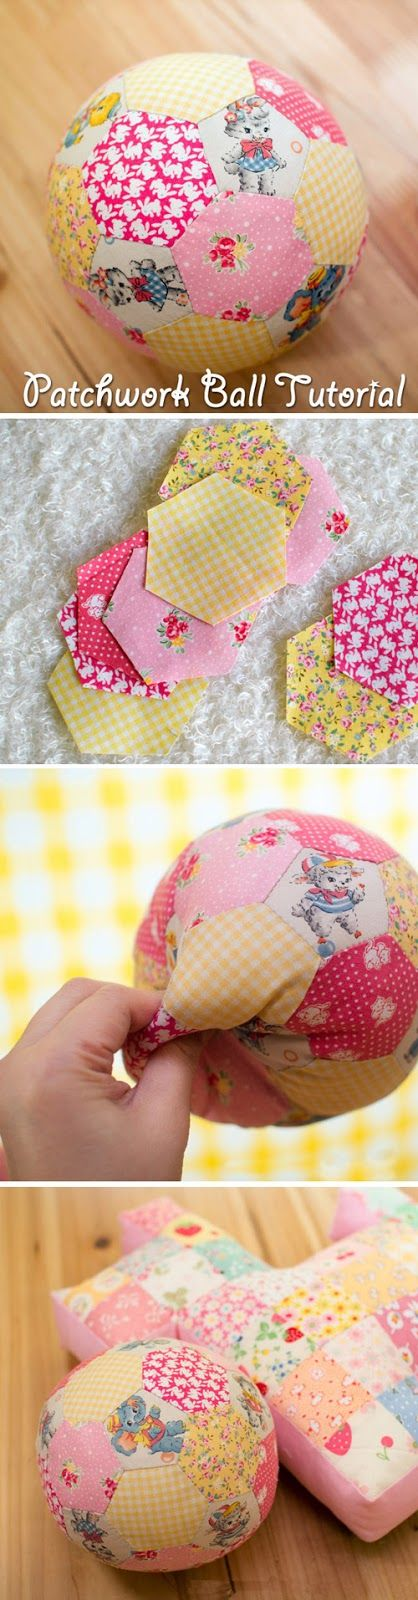 Tutorial: make a patchwork ball. Large soft Patchwork decoration in the shape of a ball hand stitched from patches in random bright colours. http://www.handmadiya.com/2015/08/patchwork-ball.html